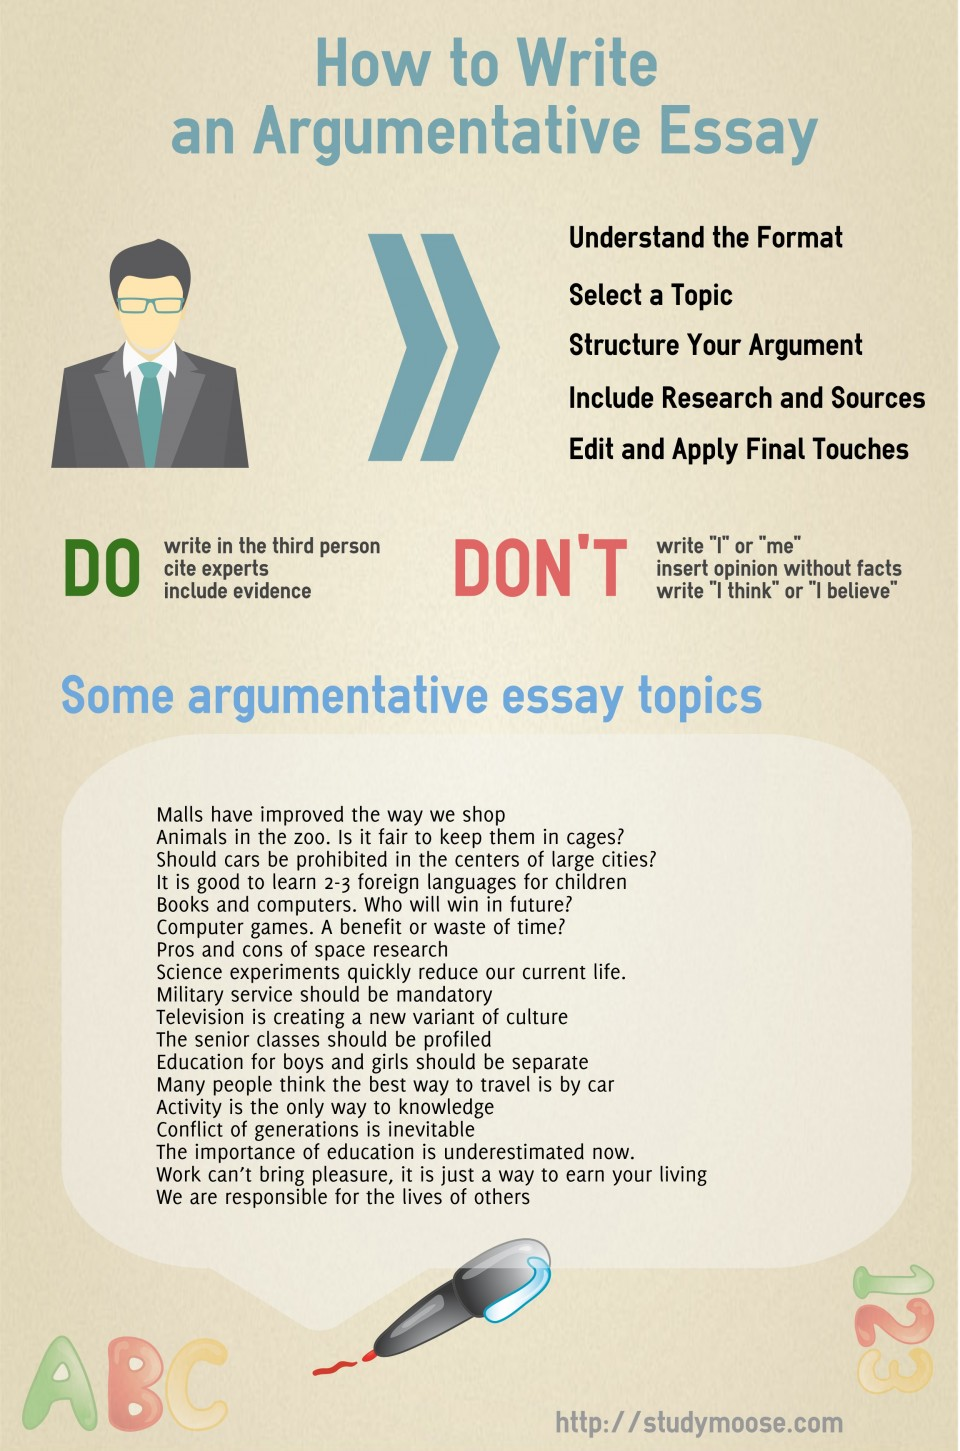 007 Essay Example How To Write An Argumentative Argument Astounding Topics Gre For High Schoolers New York Times 960